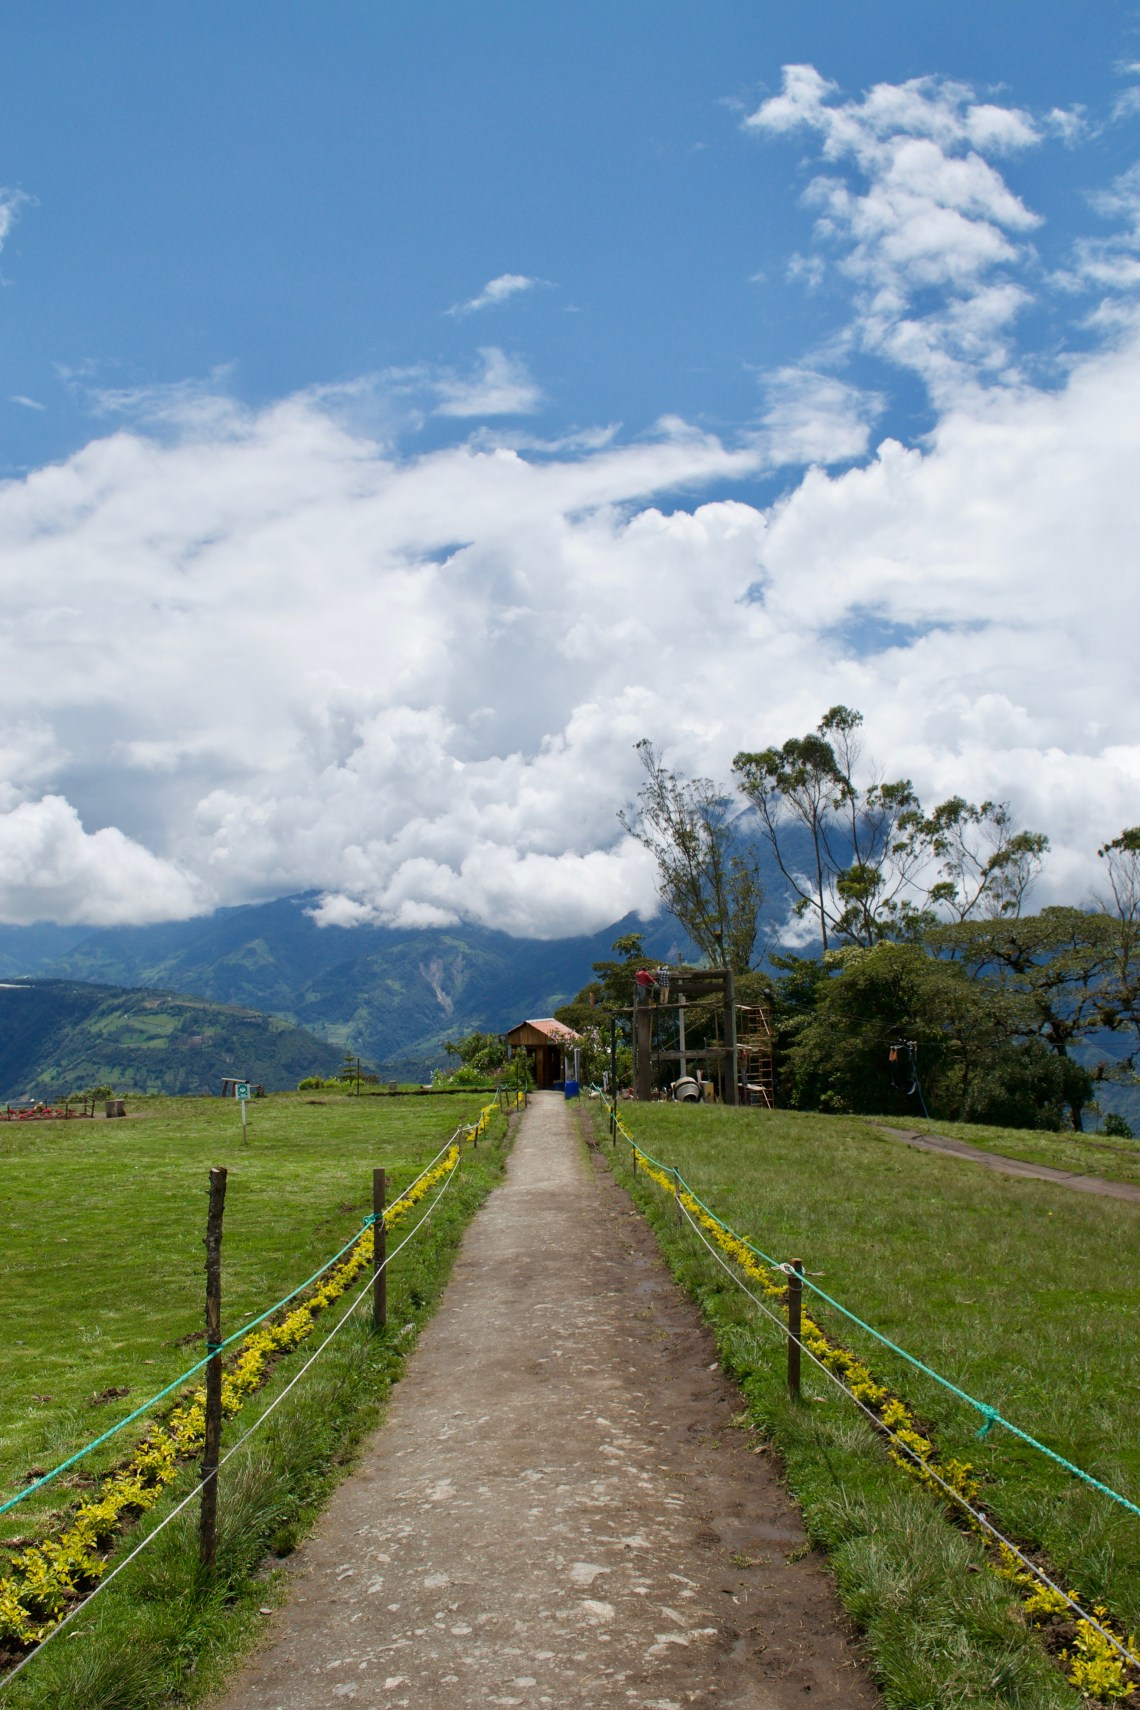 Swing At The End of the World, Banos, Ecuador